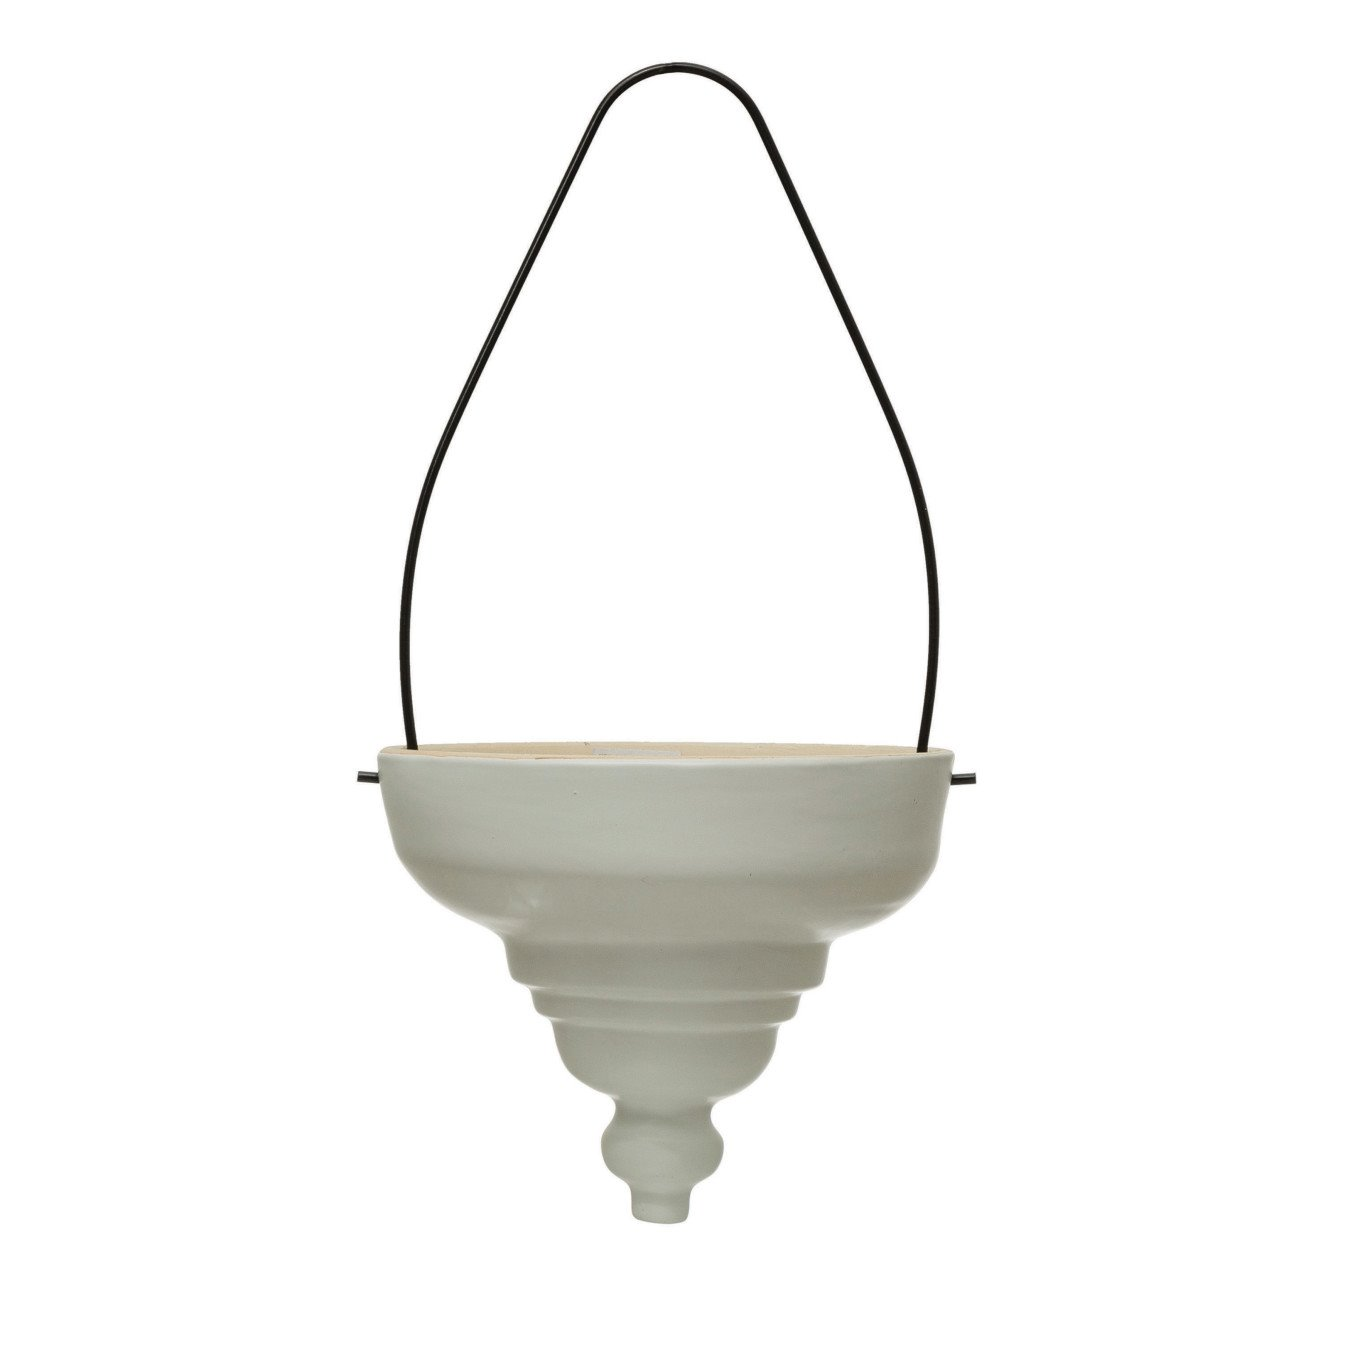 Terra-cotta Hanging Planter with Metal Hanger, Matte White